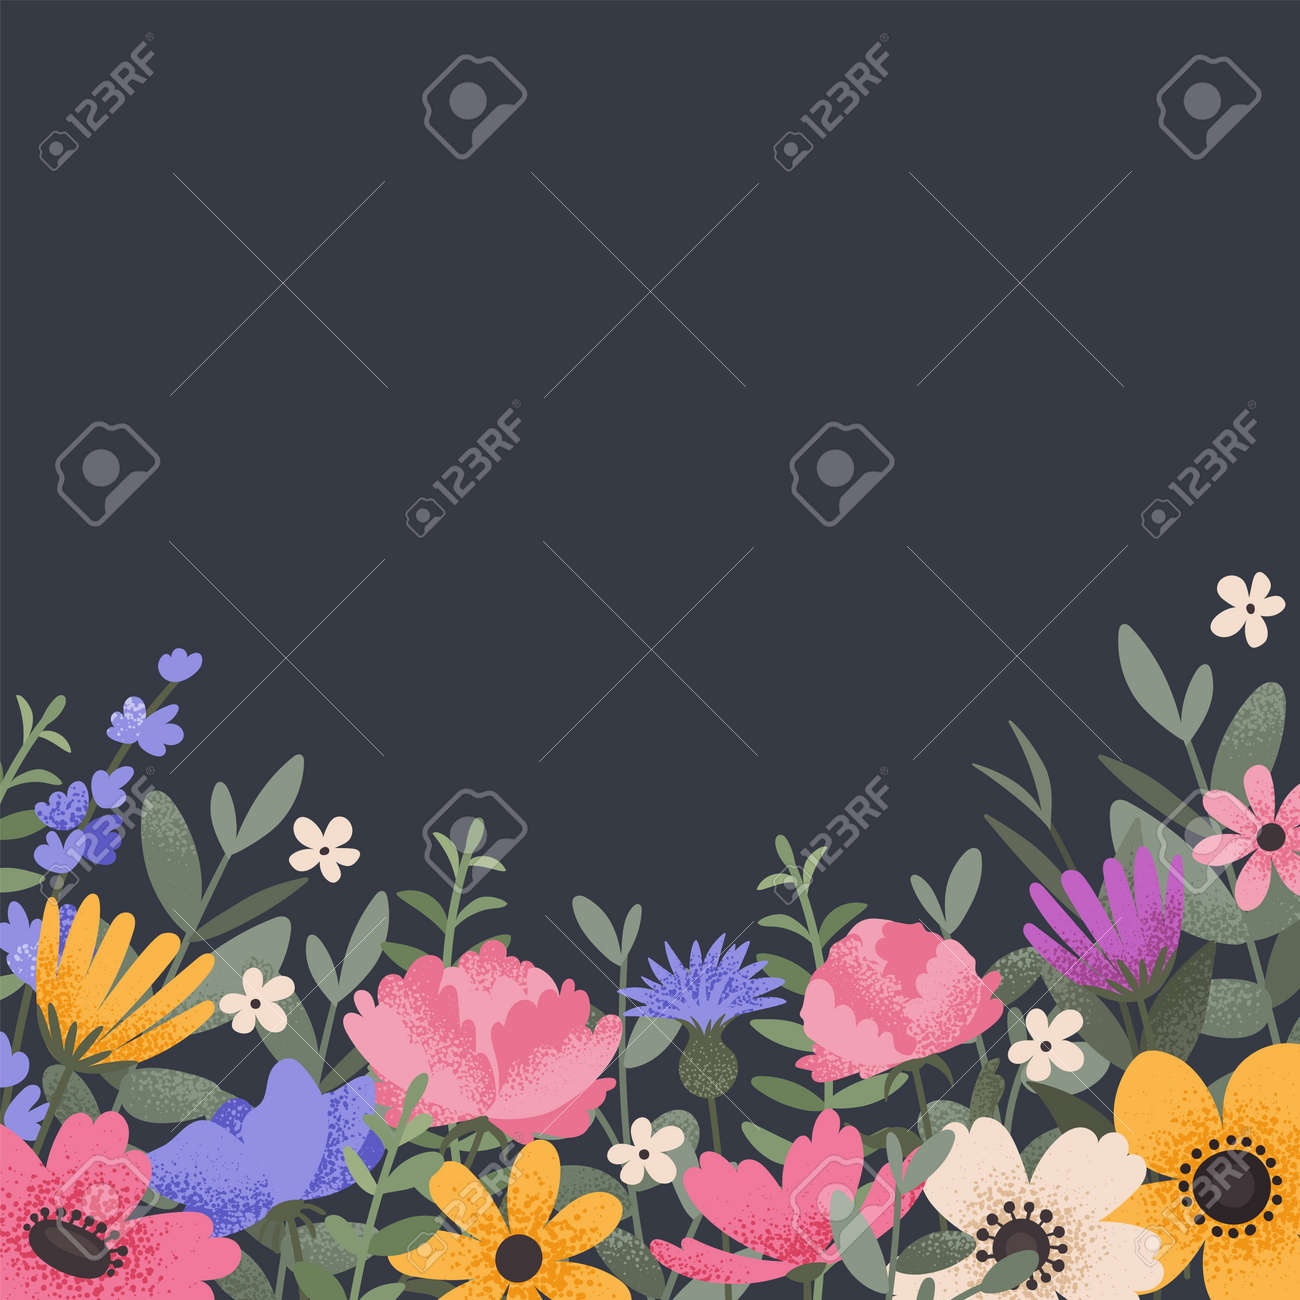 Floral background design with summer flowers. Greeting card with place for text. Template for invitation card with beautiful peonies and anemone flowers. Vector illustration - 164590477